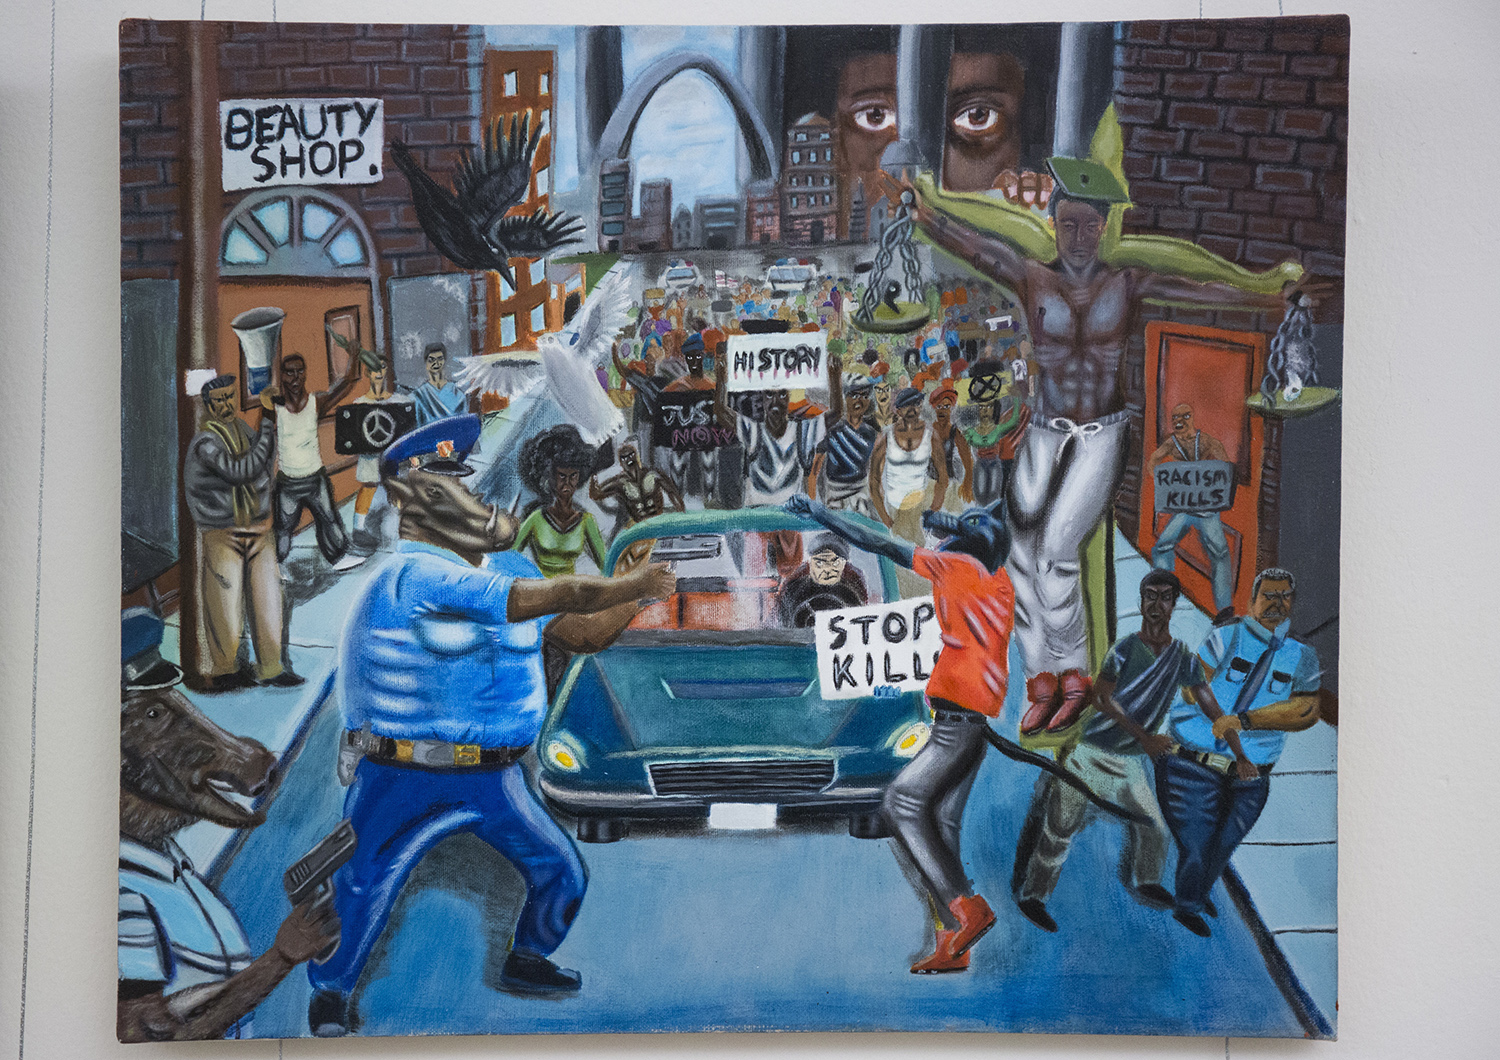 Democratic Congressman Keeps Hanging Painting Back Up That Depicts Cops as Pigs